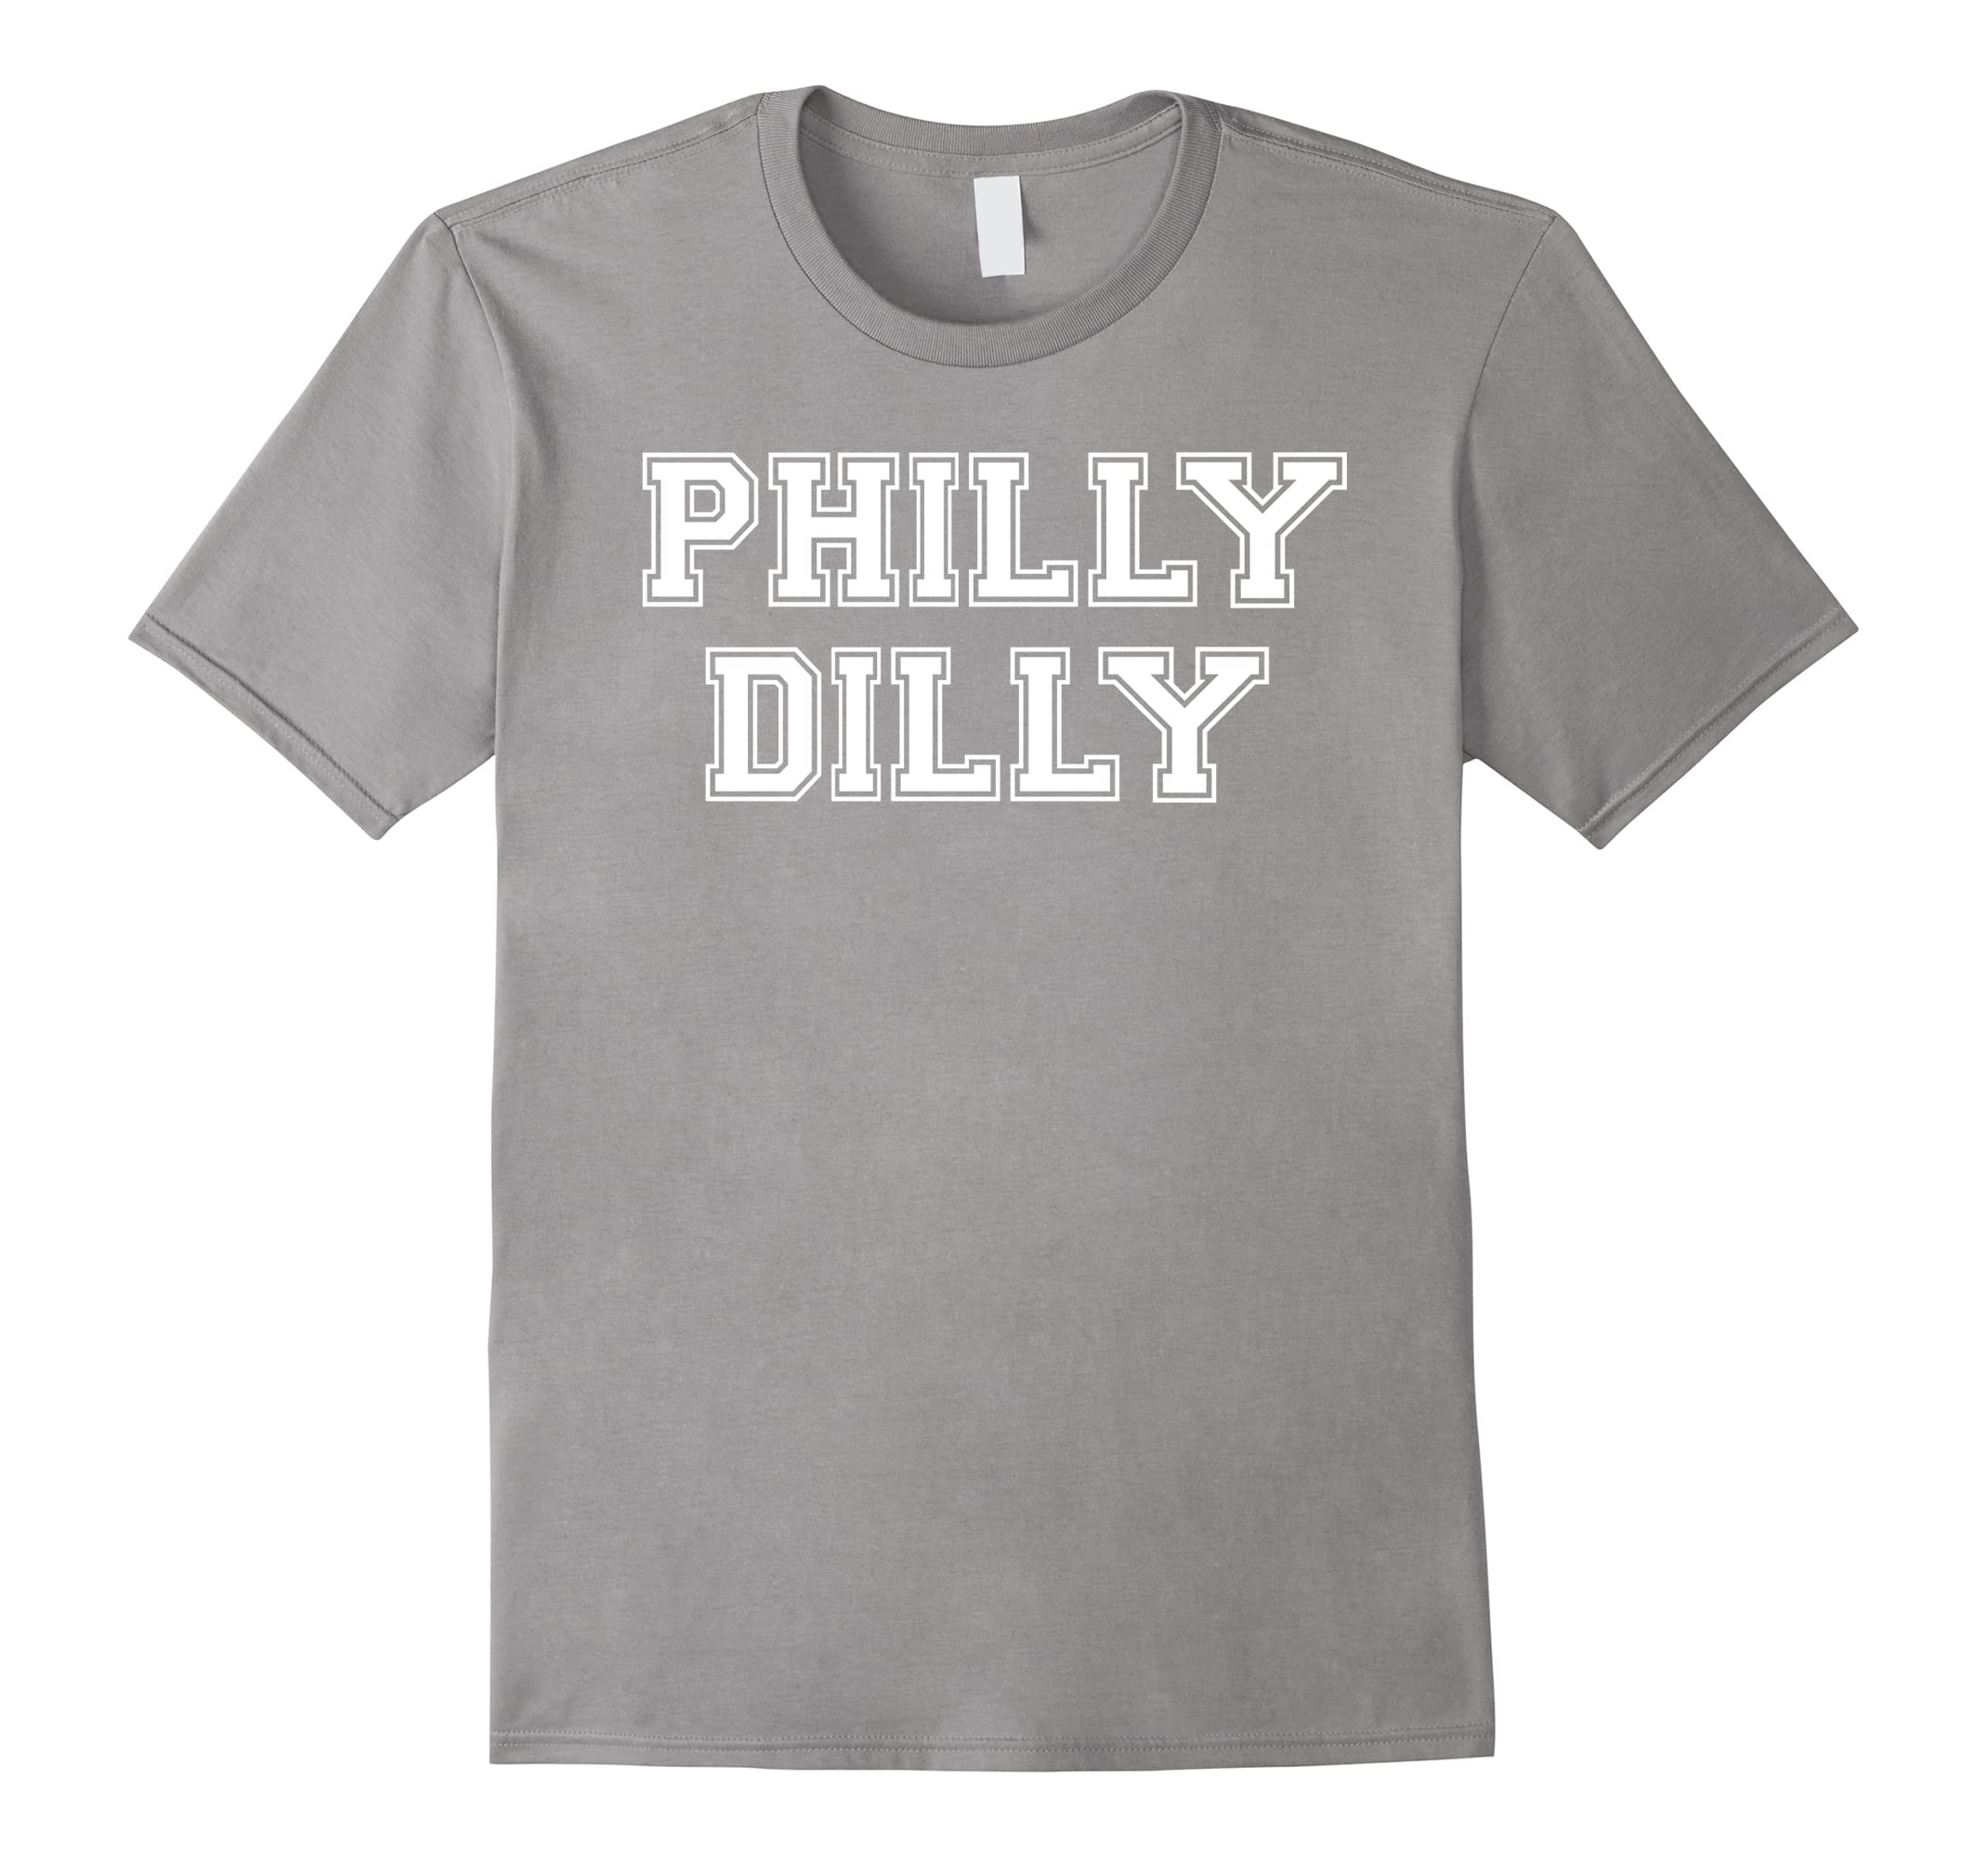 Philly Dilly TShirt ~ Fly Philadelphia T-Shirt-ah my shirt one gift